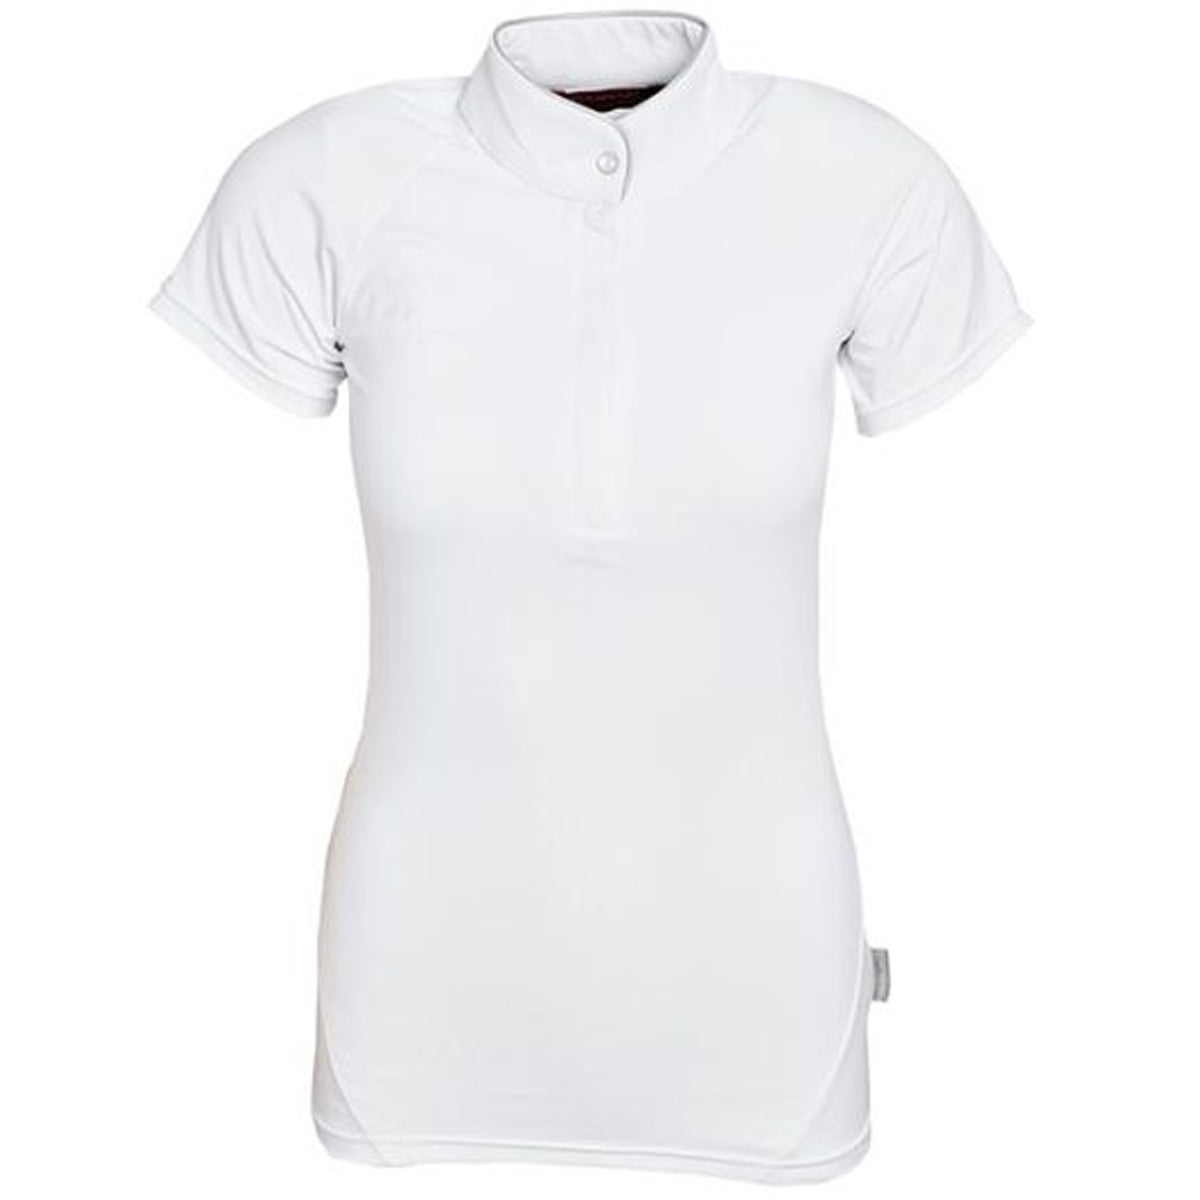 Horseware Sara Competition Short Sleeve Shirt